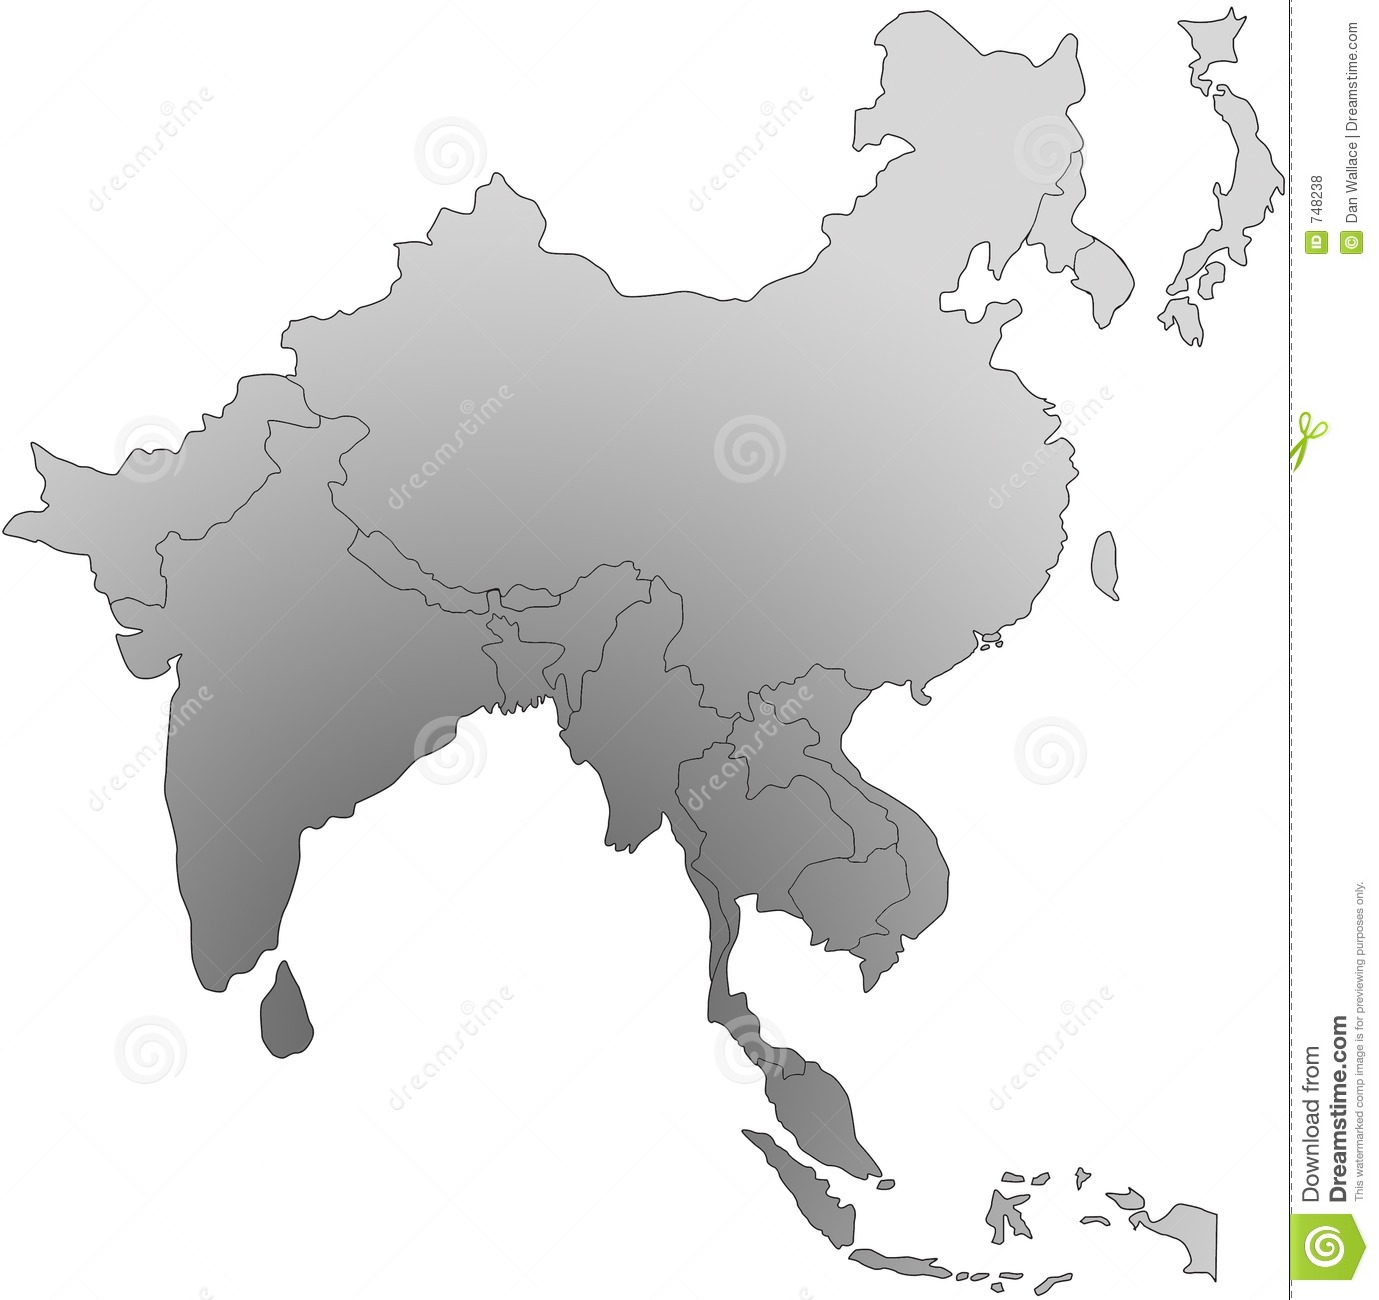 South East Asia Map Royalty Free Photos Image 748238 – Free Map of Asia